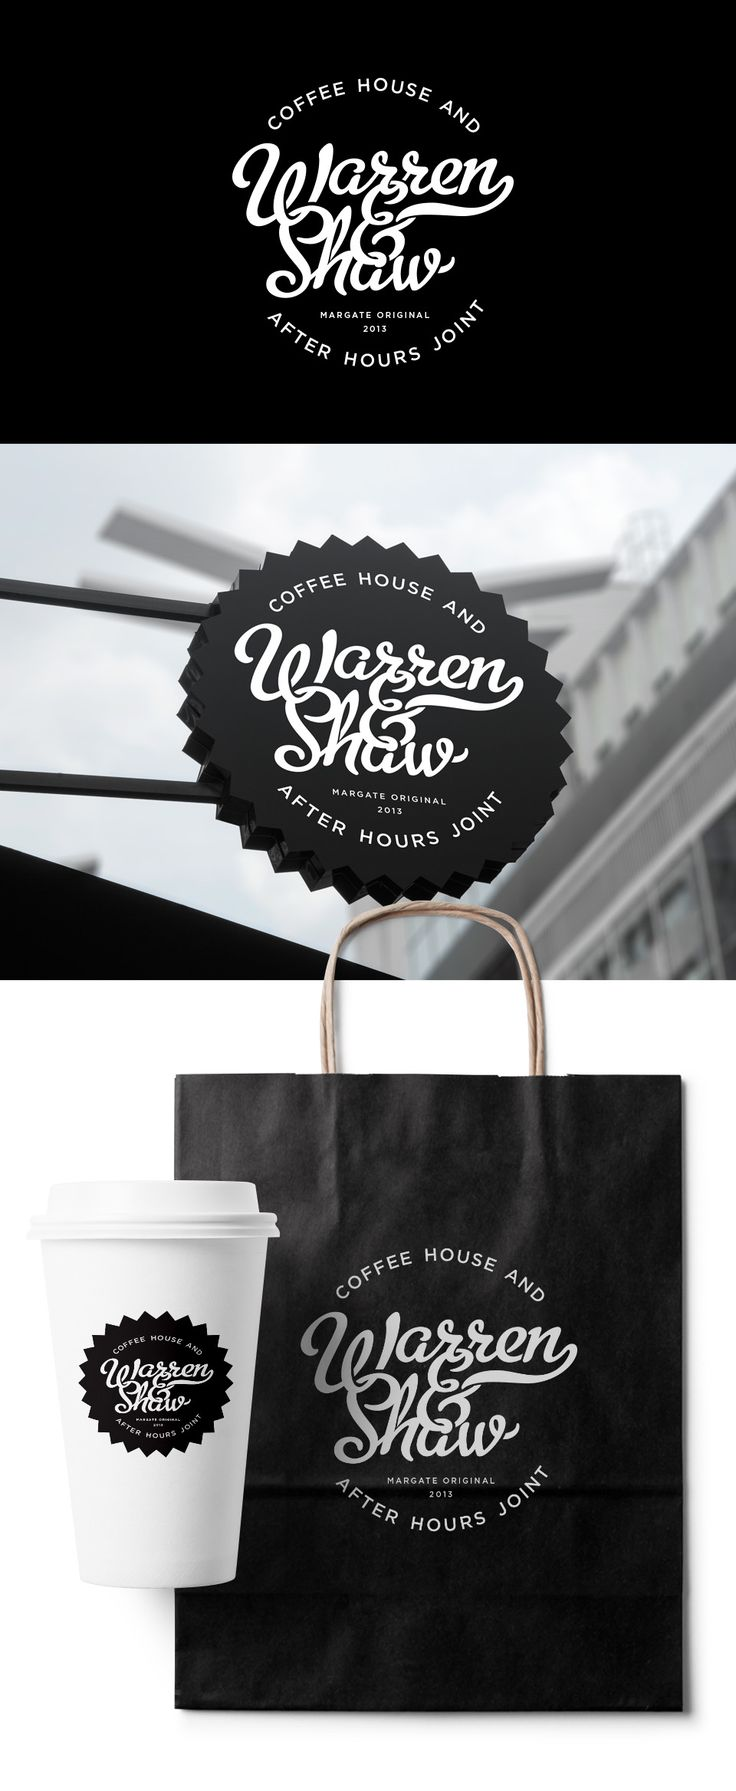 Design #6 by nenadd   Create a sophisticated logo for a coffee house and bar